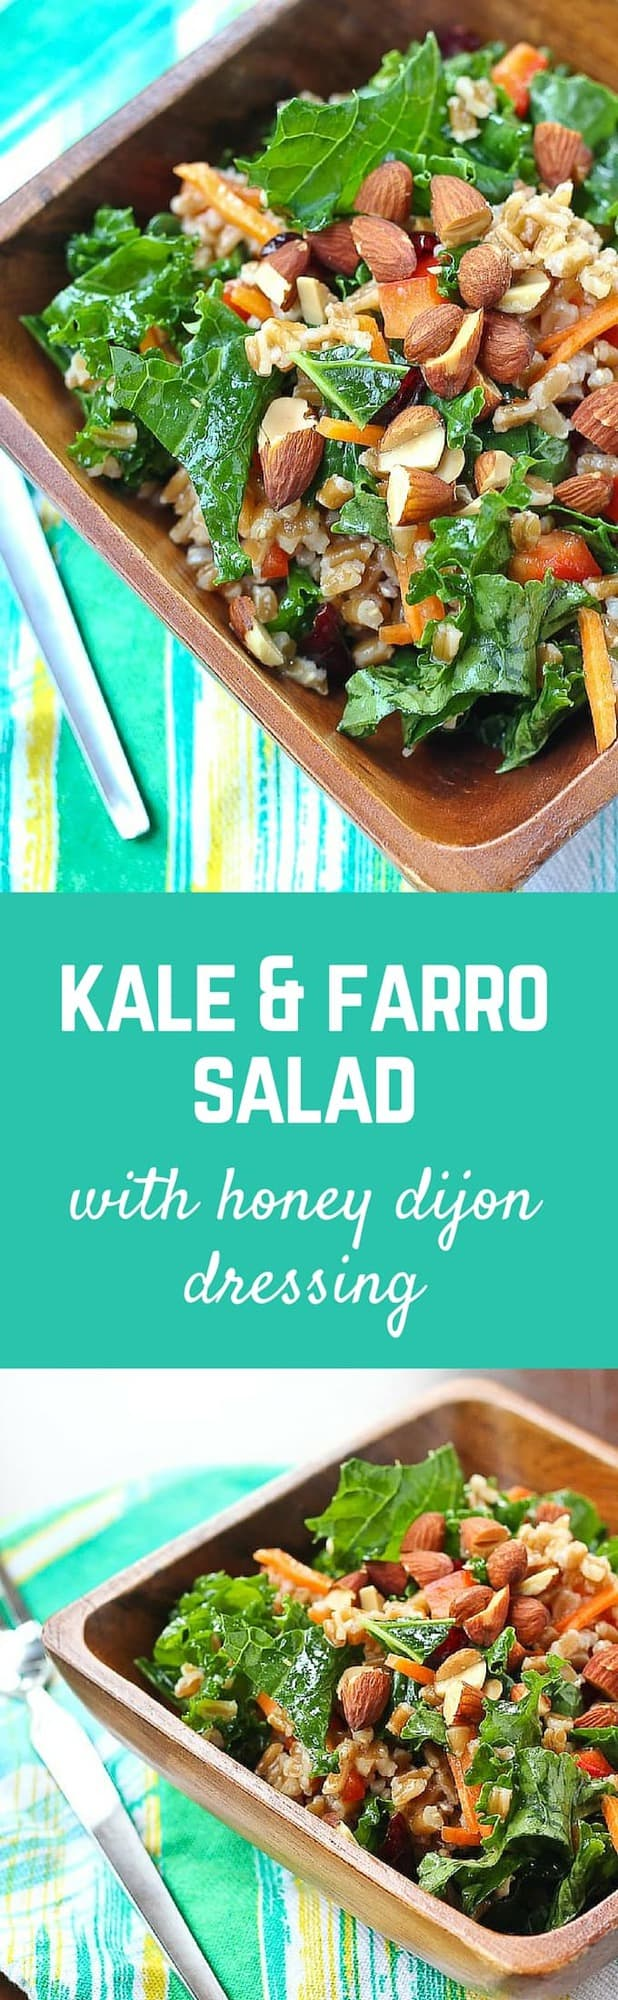 This kale salad keeps really well in your fridge - great for healthy ...